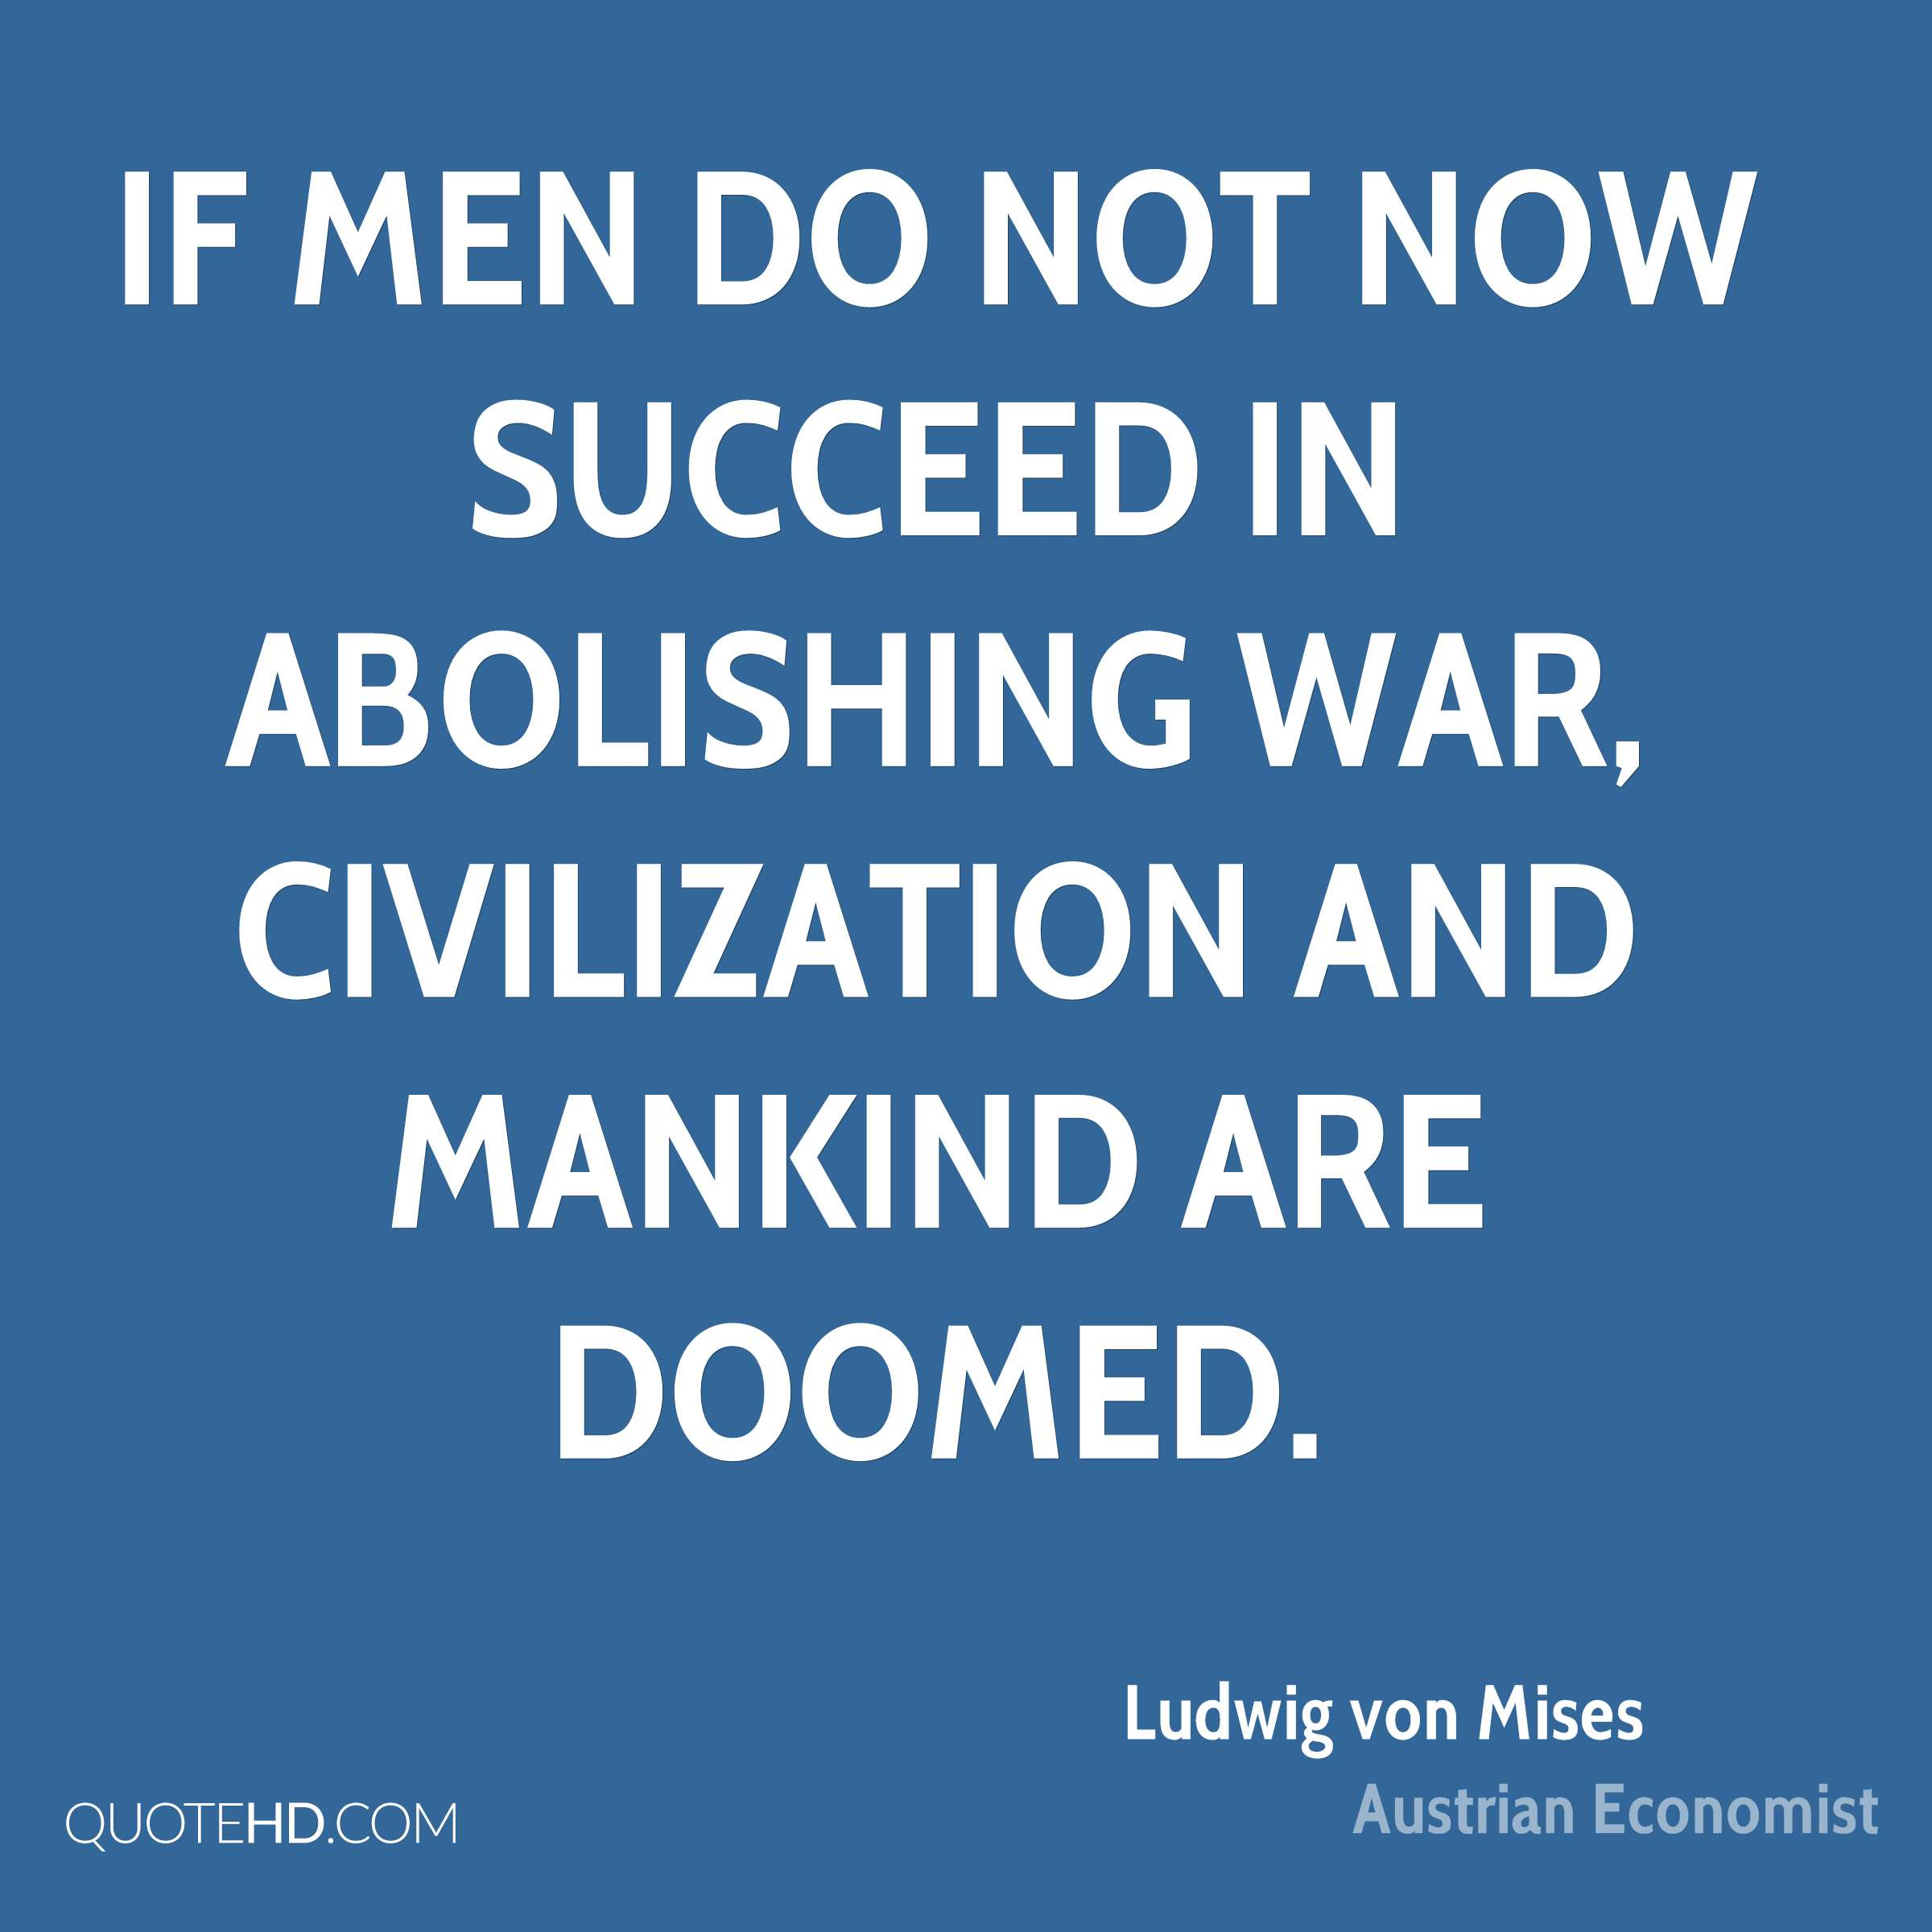 If men do not now succeed in abolishing war, civilization and mankind are doomed.